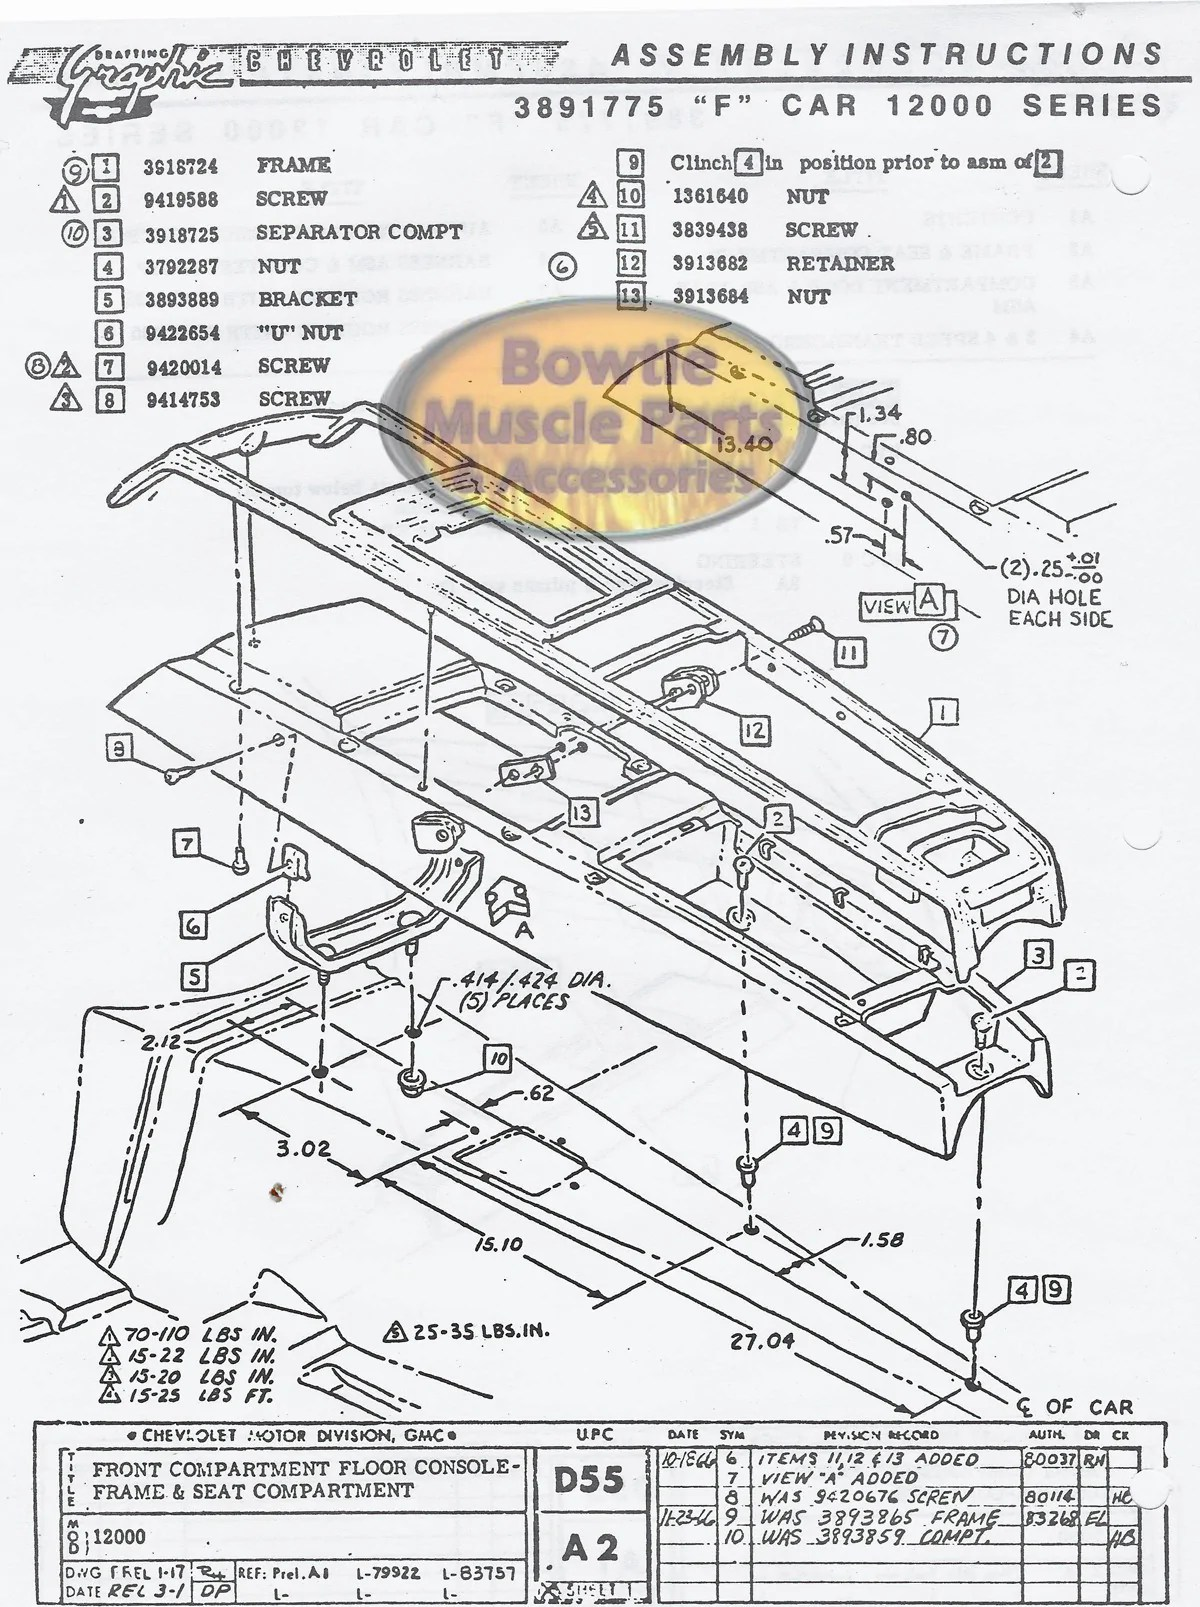 02 Jeep Liberty Timing Diagram 2002 37 Have You Got A For The Engine